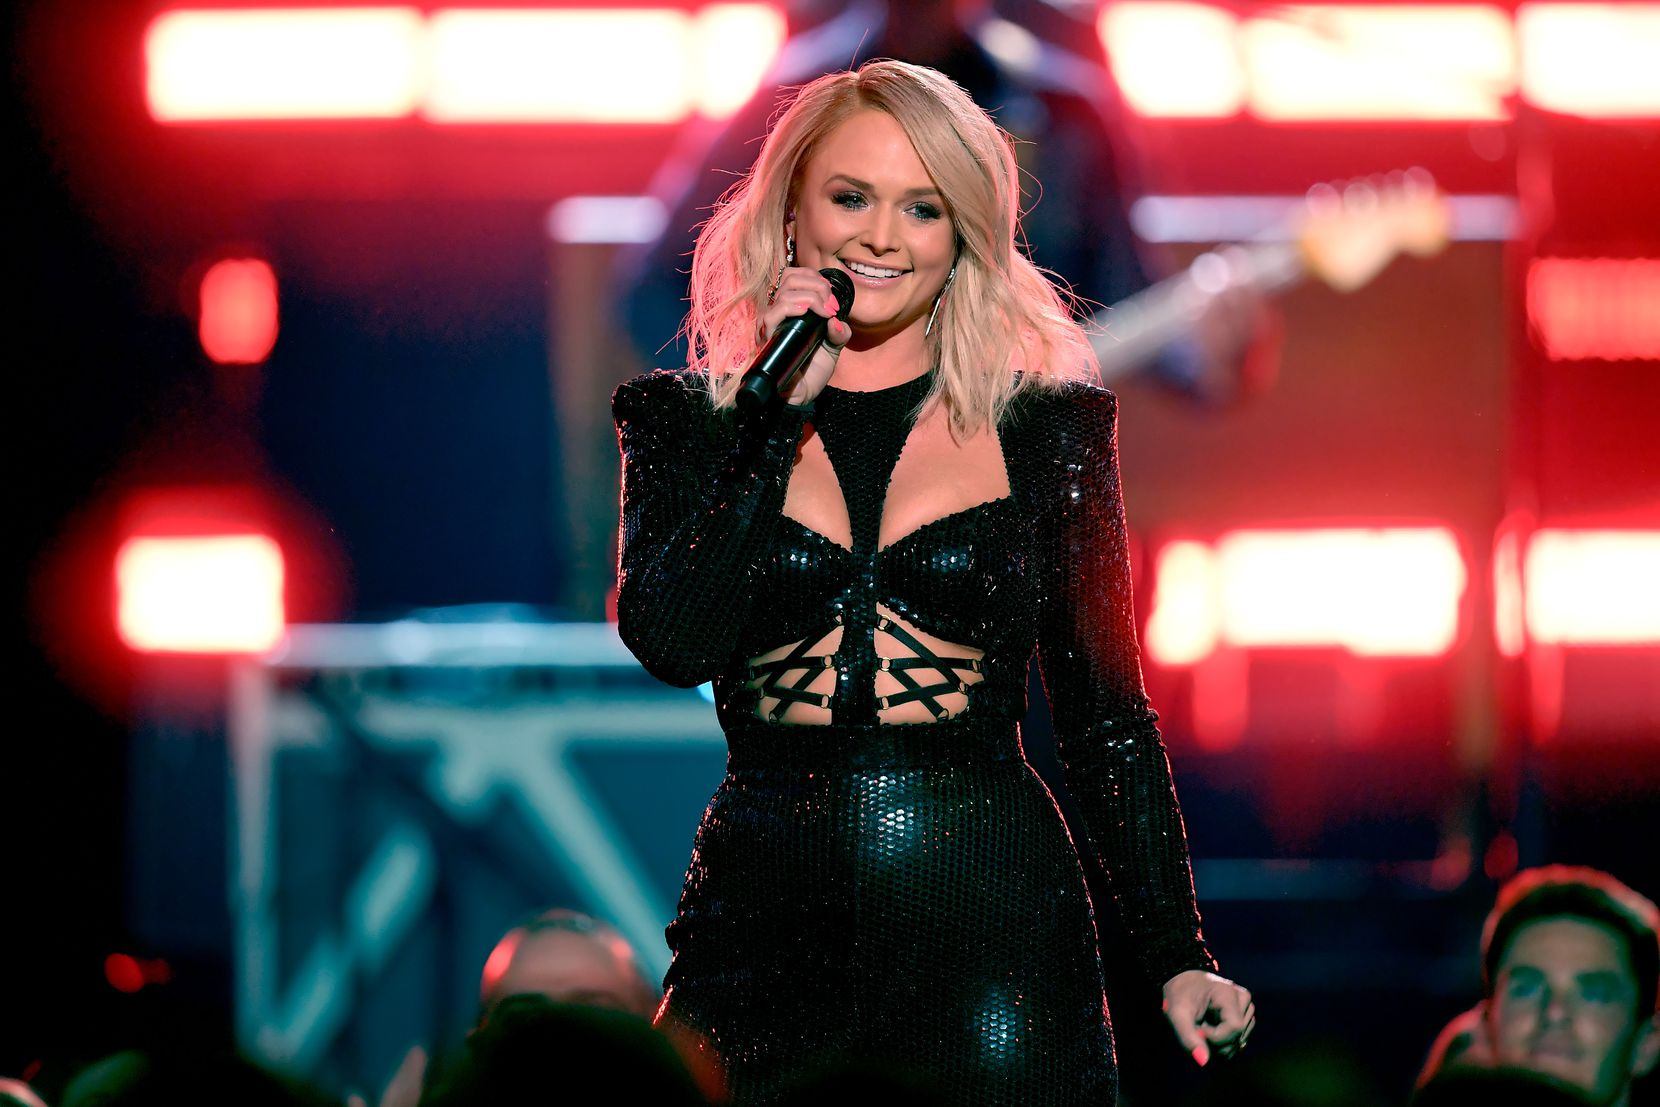 Miranda Lambert performs onstage during the 54th Academy Of Country Music Awards at MGM Grand Garden Arena on April 7, 2019 in Las Vegas, Nevada.